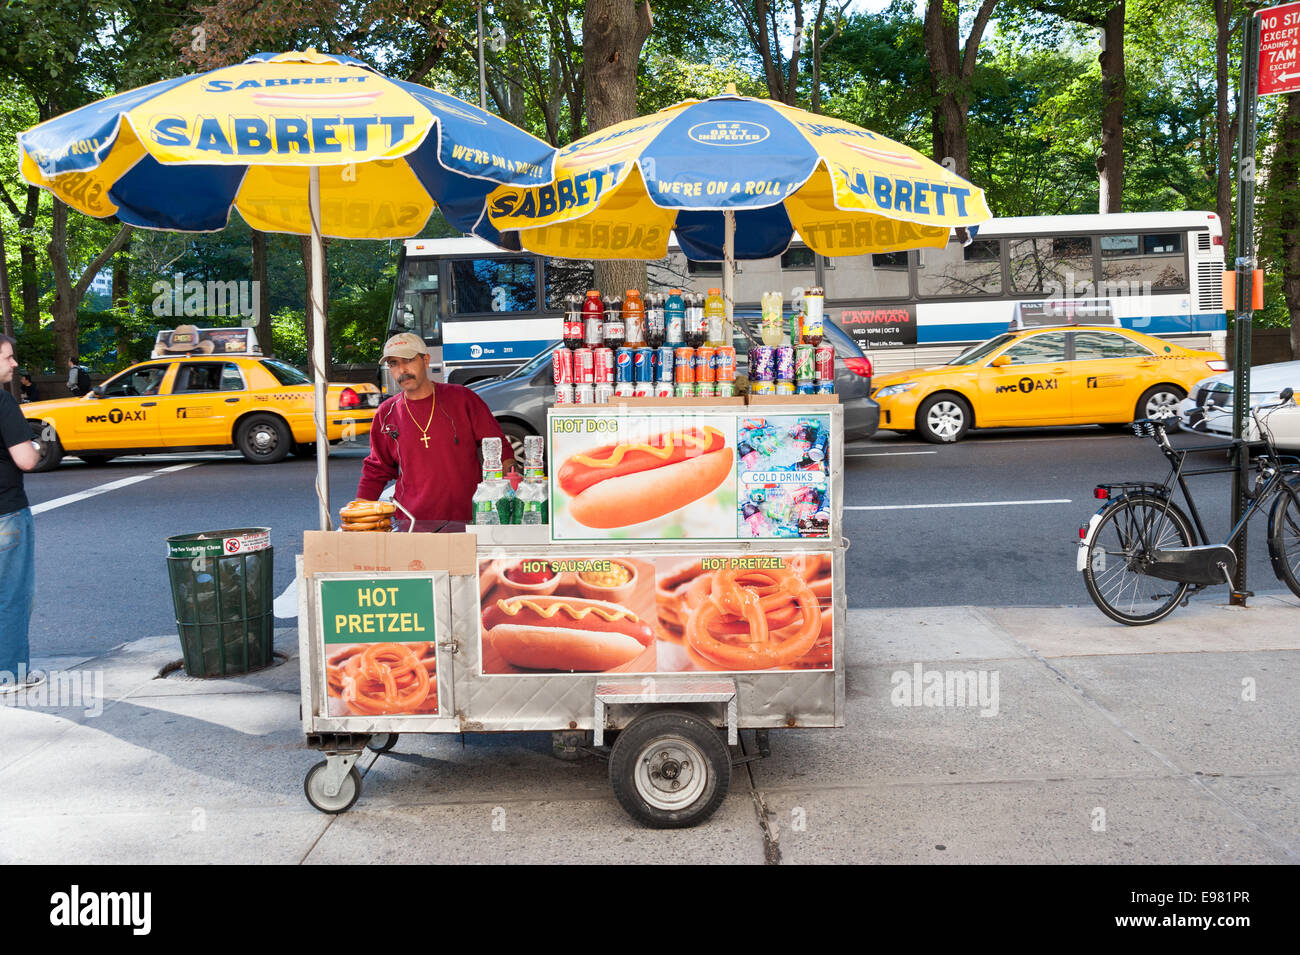 Sabrett Hot Dog Trucks